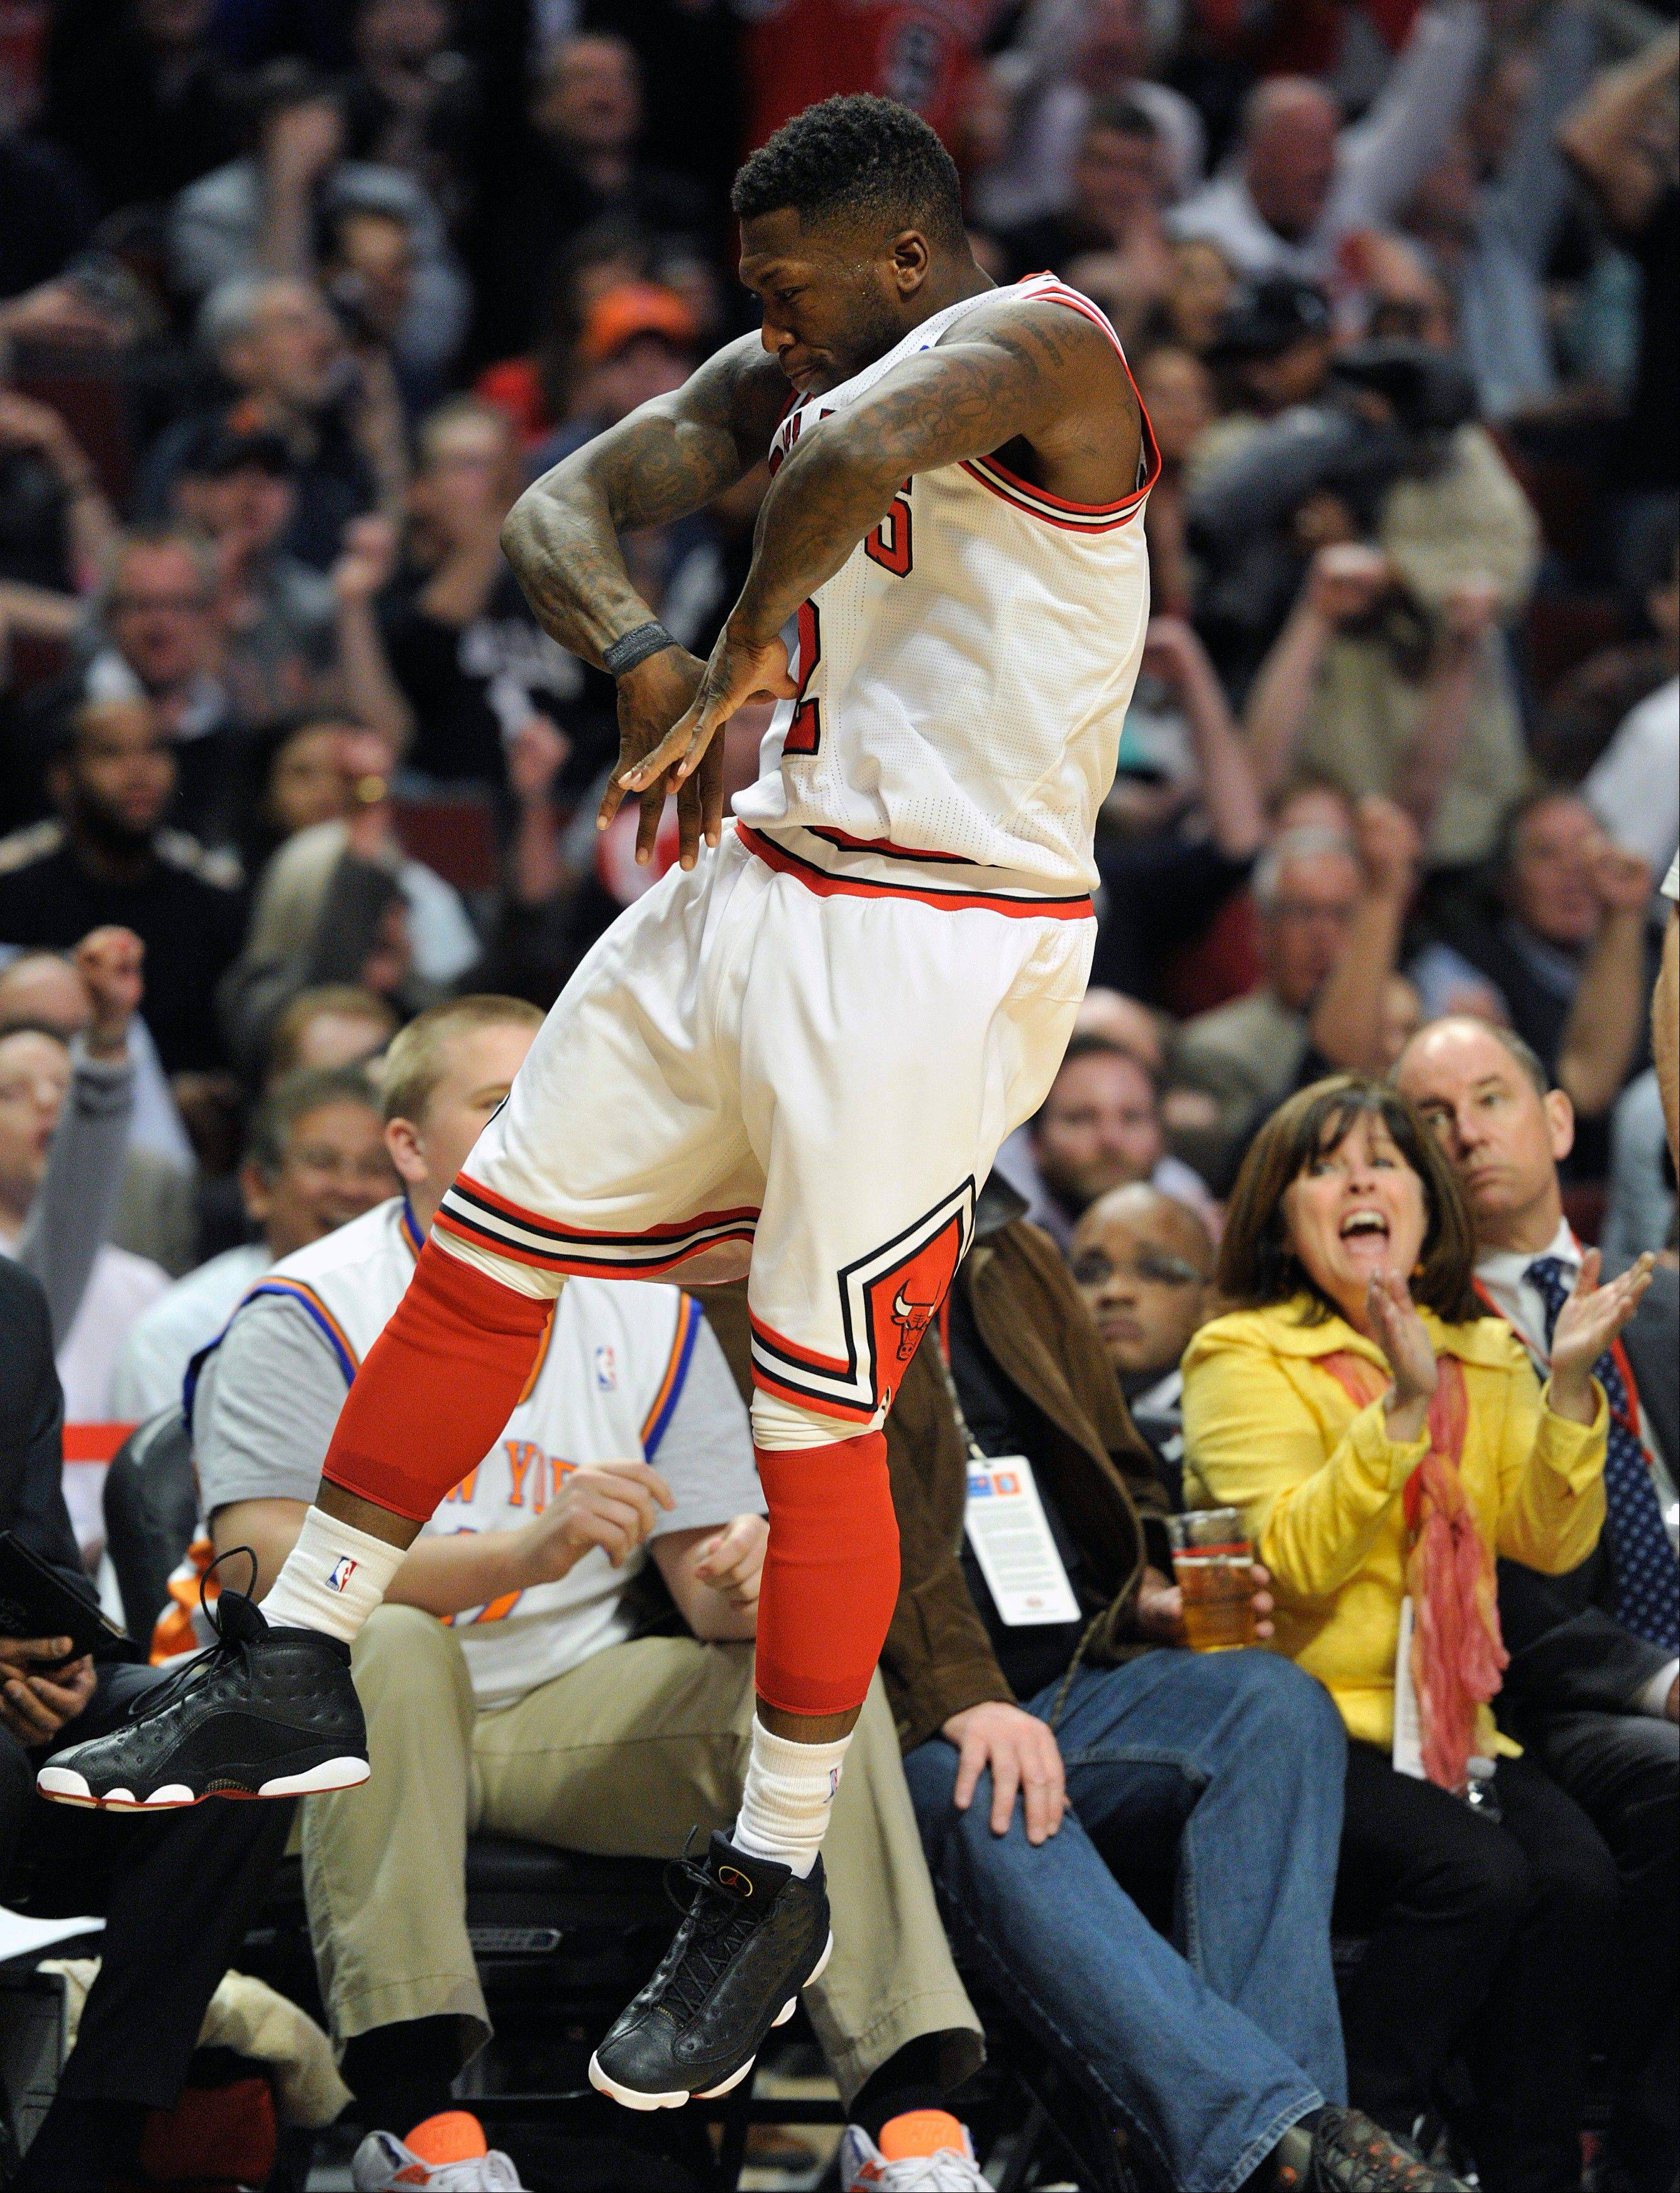 Chicago Bulls' Nate Robinson reacts after a 3-pointer against the New York Knicks during the second half of an NBA basketball game, Thursday, April 11, 2013, in Chicago. The Bulls won 118-111 in overtime. (AP Photo/Jim Prisching)